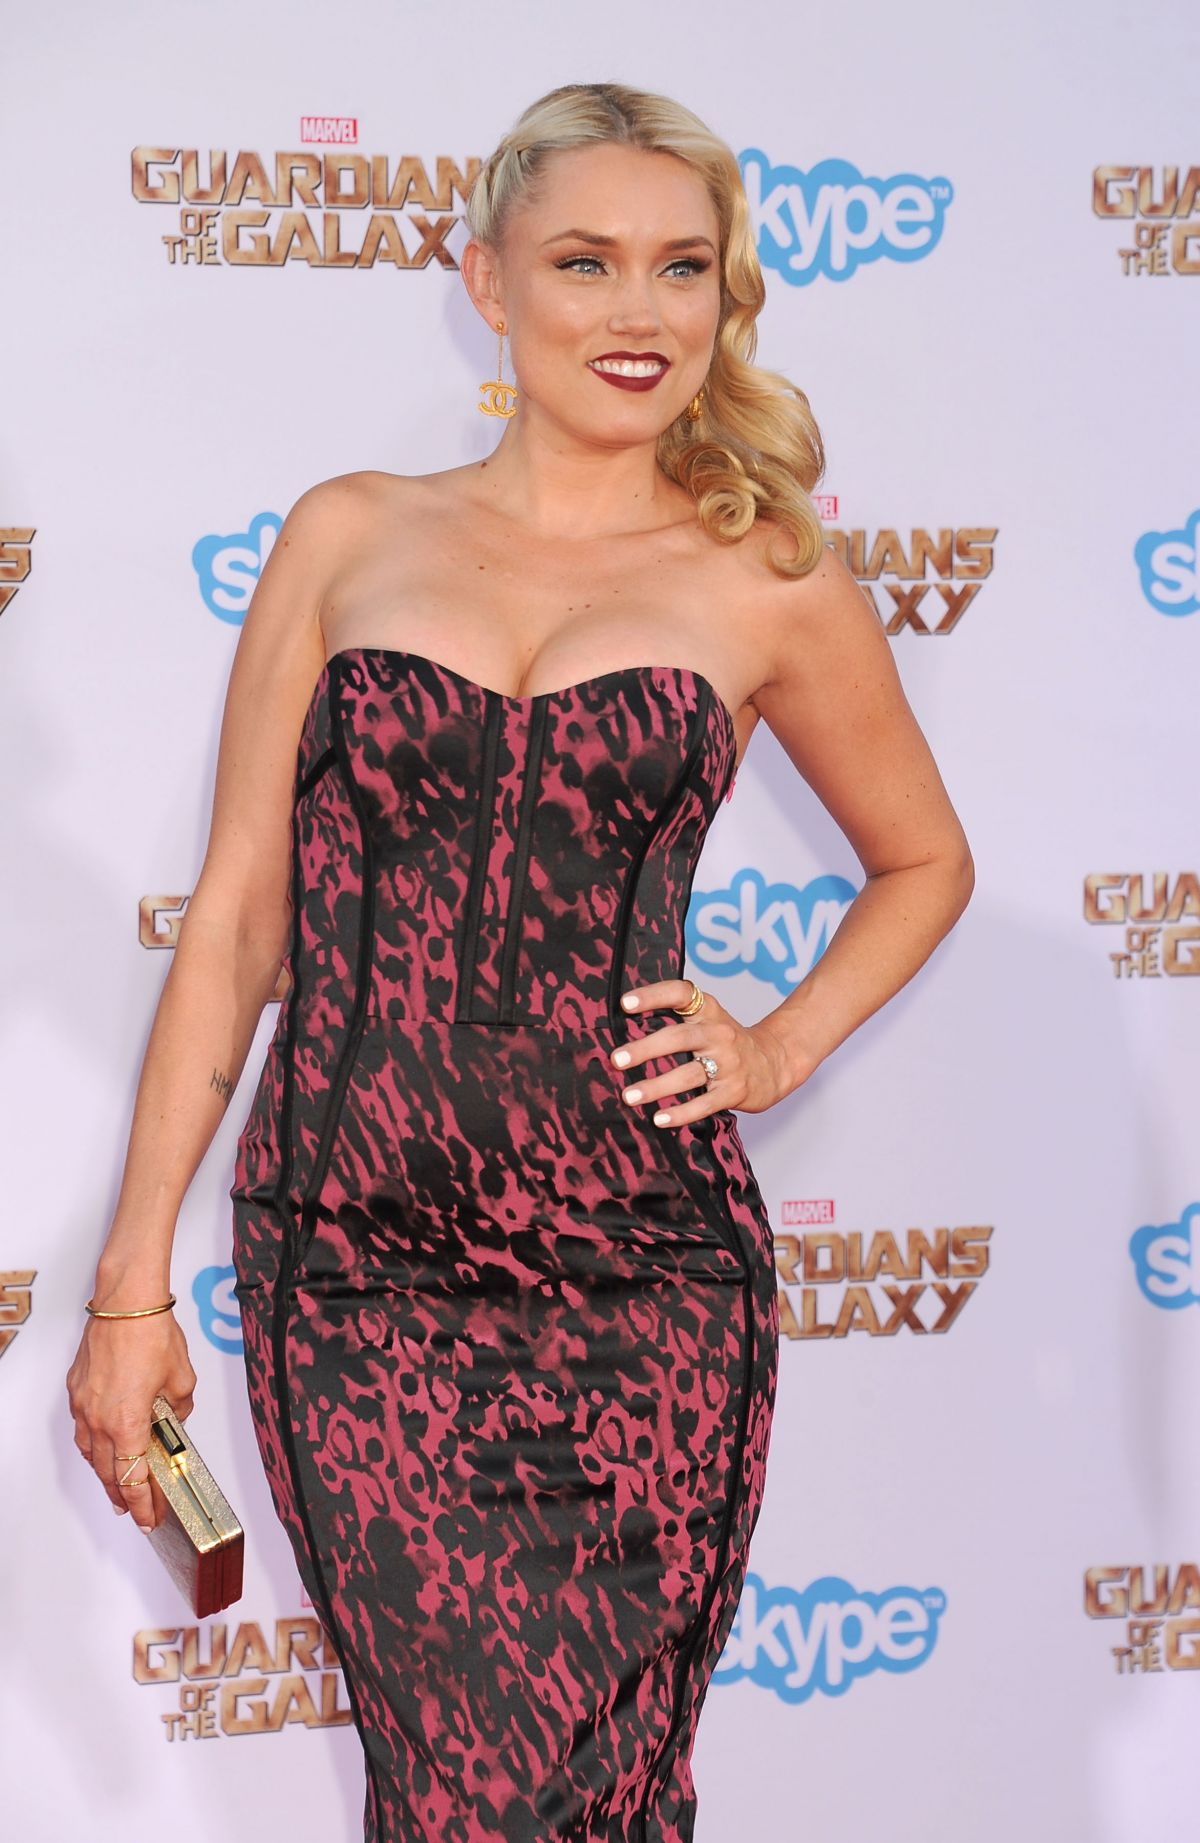 CLARE GRANT at Guardians of the Galaxy Premiere in Hollywood 1